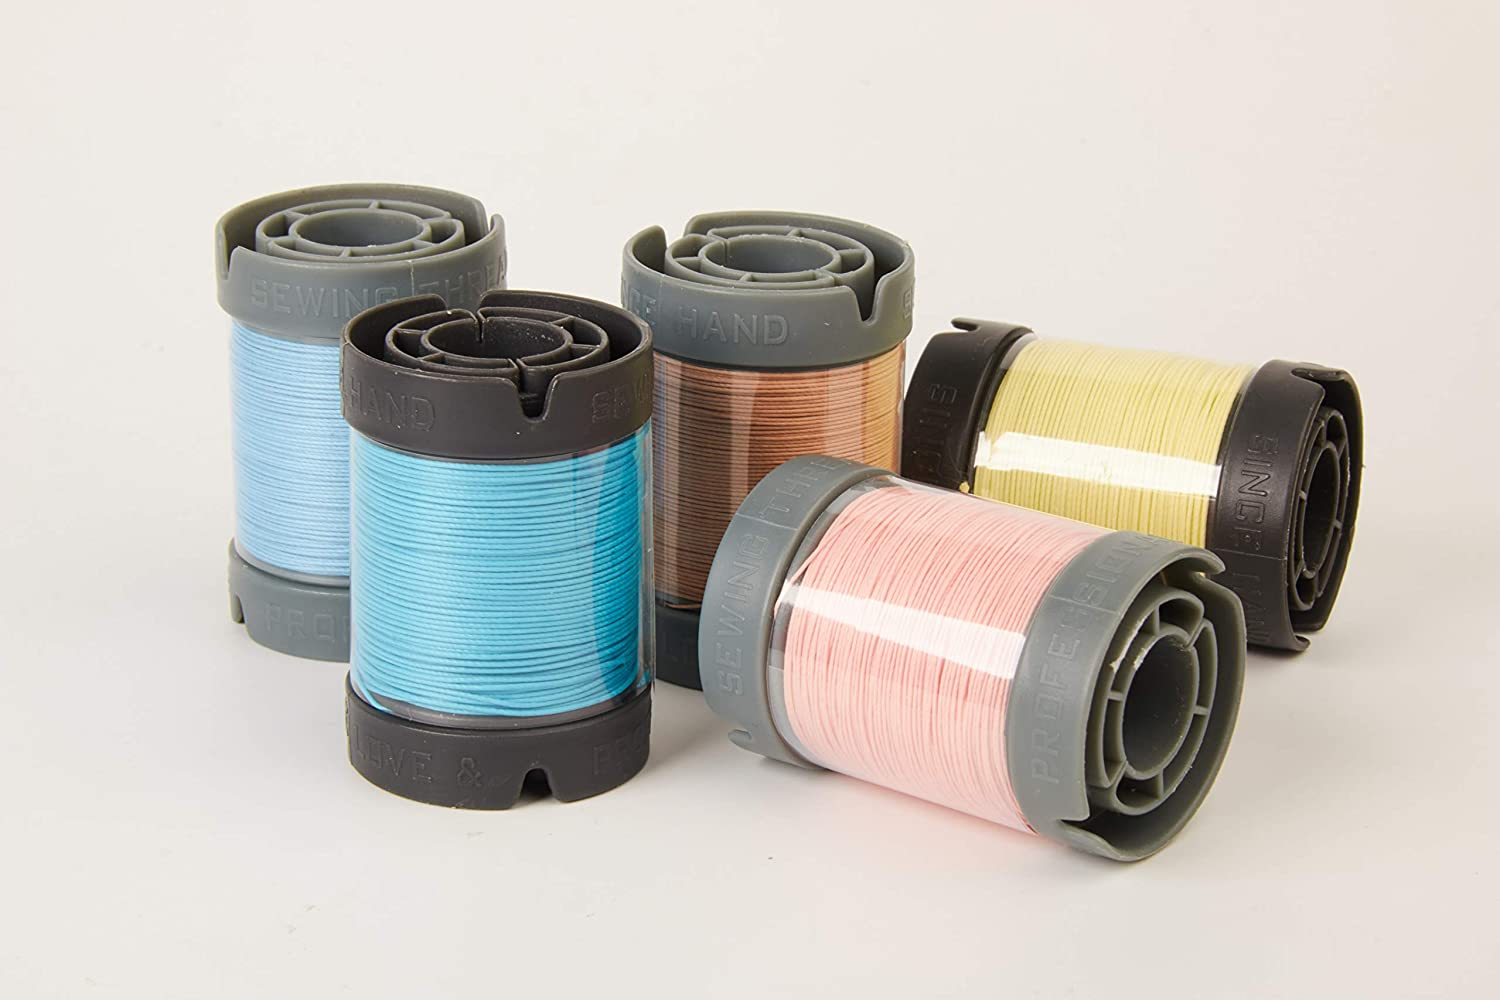 Since leather sewing flax thread for leathercraft DIY 48 colors Available (M60, Serenity Blue)